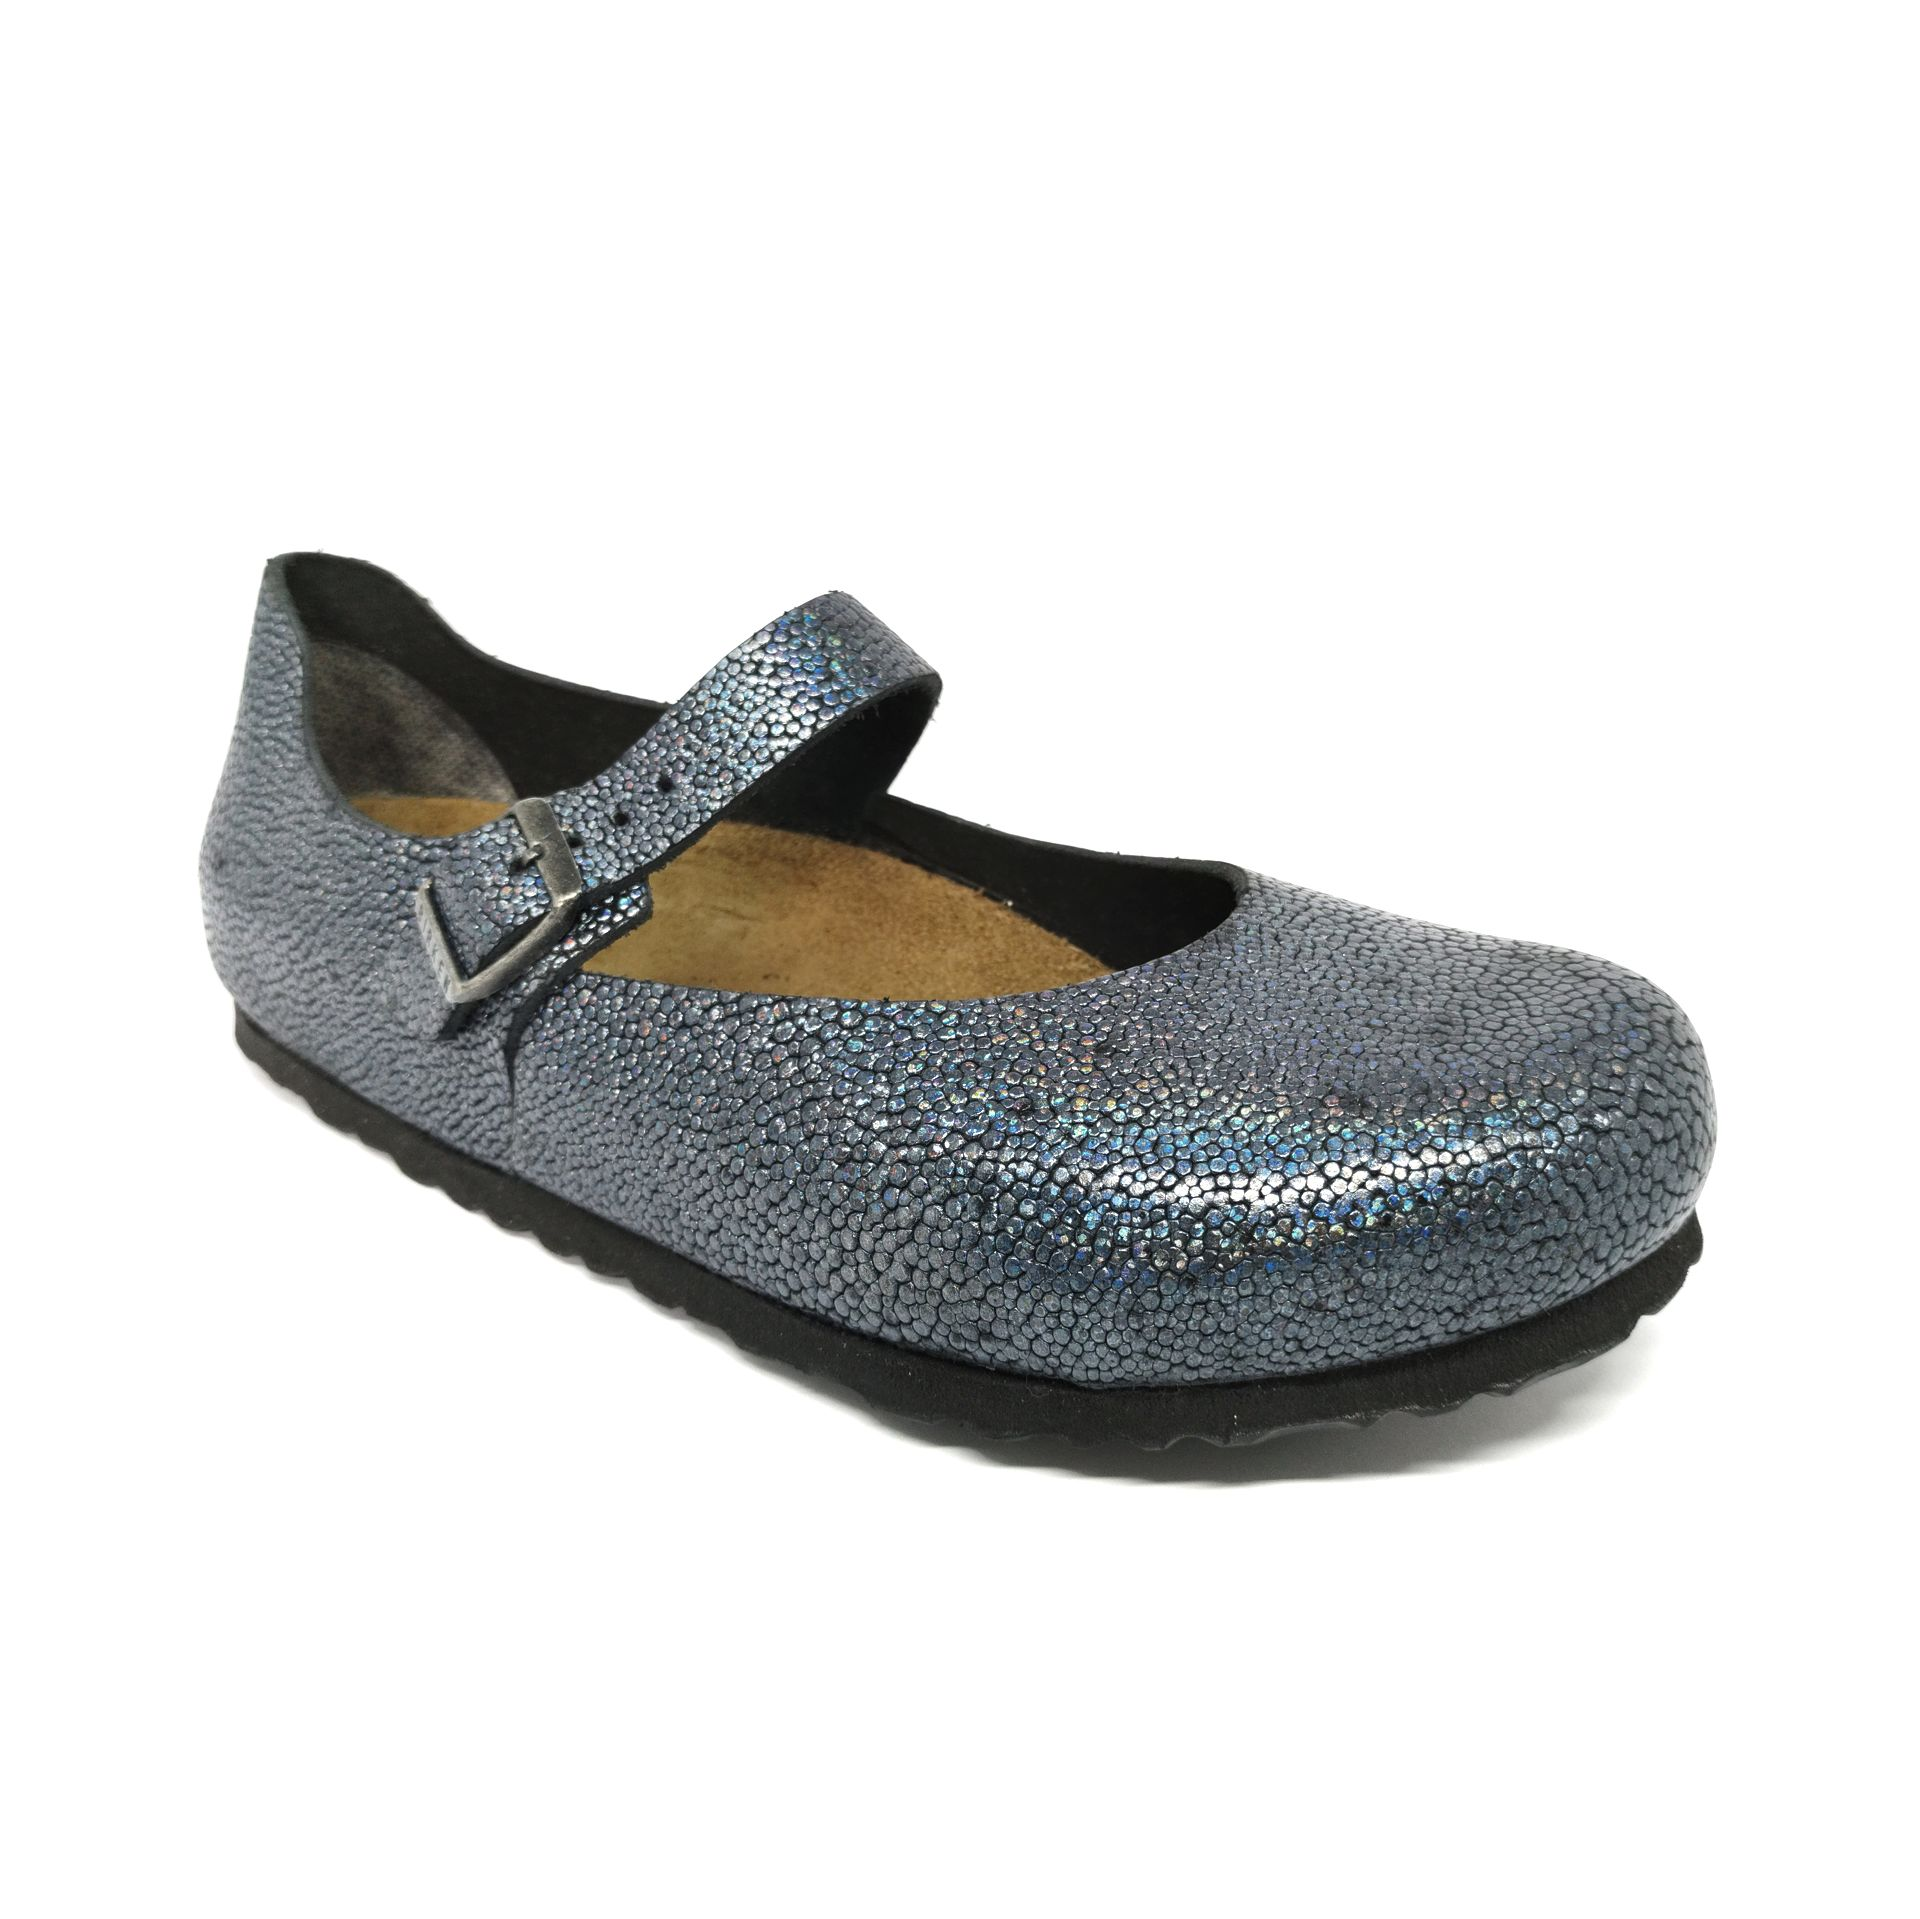 Birkenstock Mantova NU Pebbles Metallic Asphalt Narrow